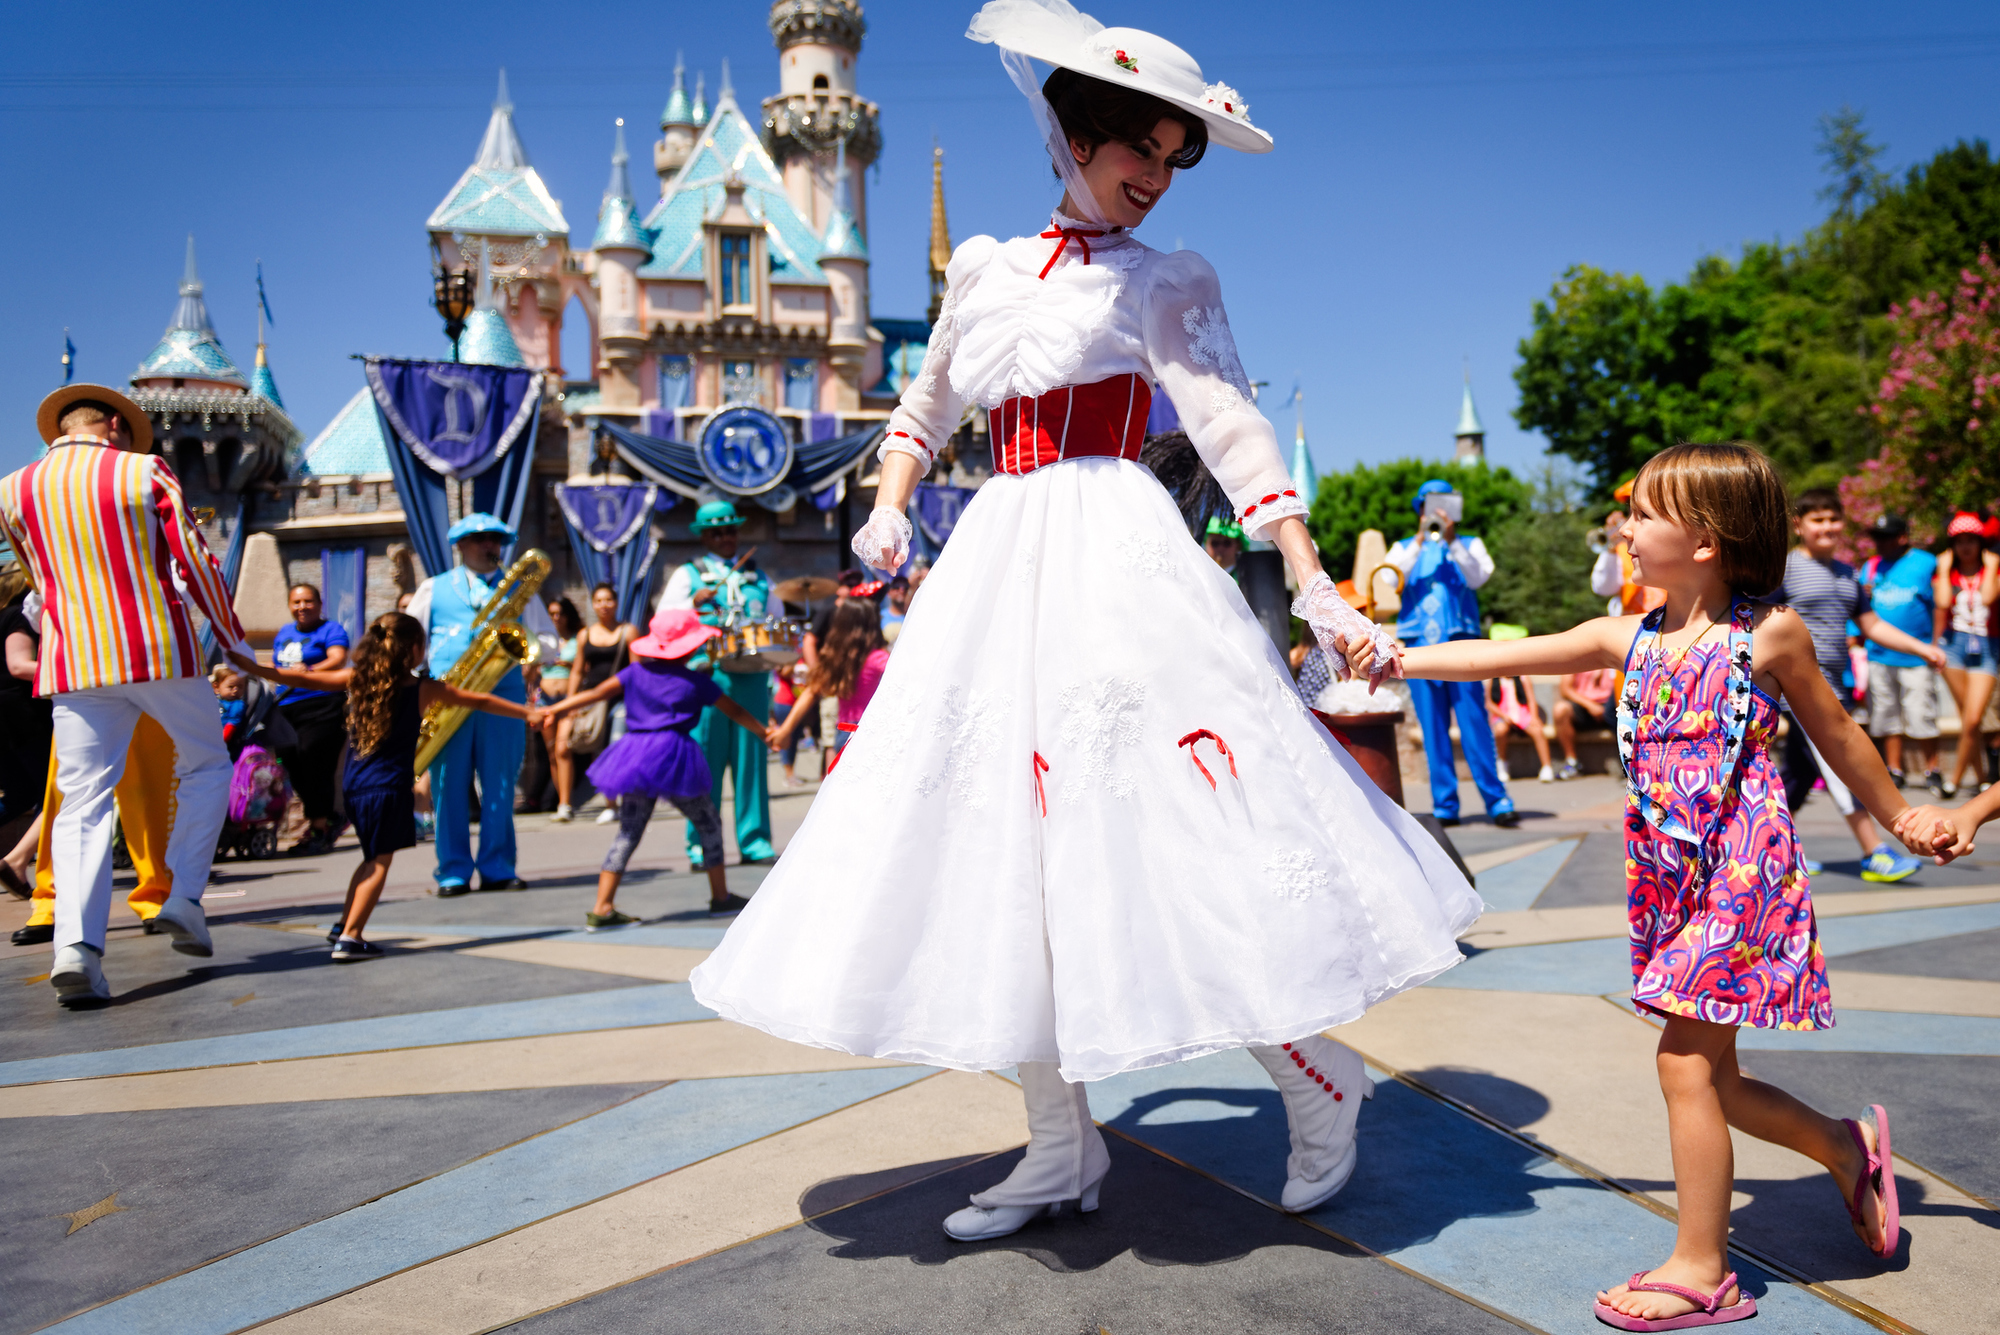 Happy place: Celebrate Disneyland's birthday in Anaheim, a flight away from Oakland